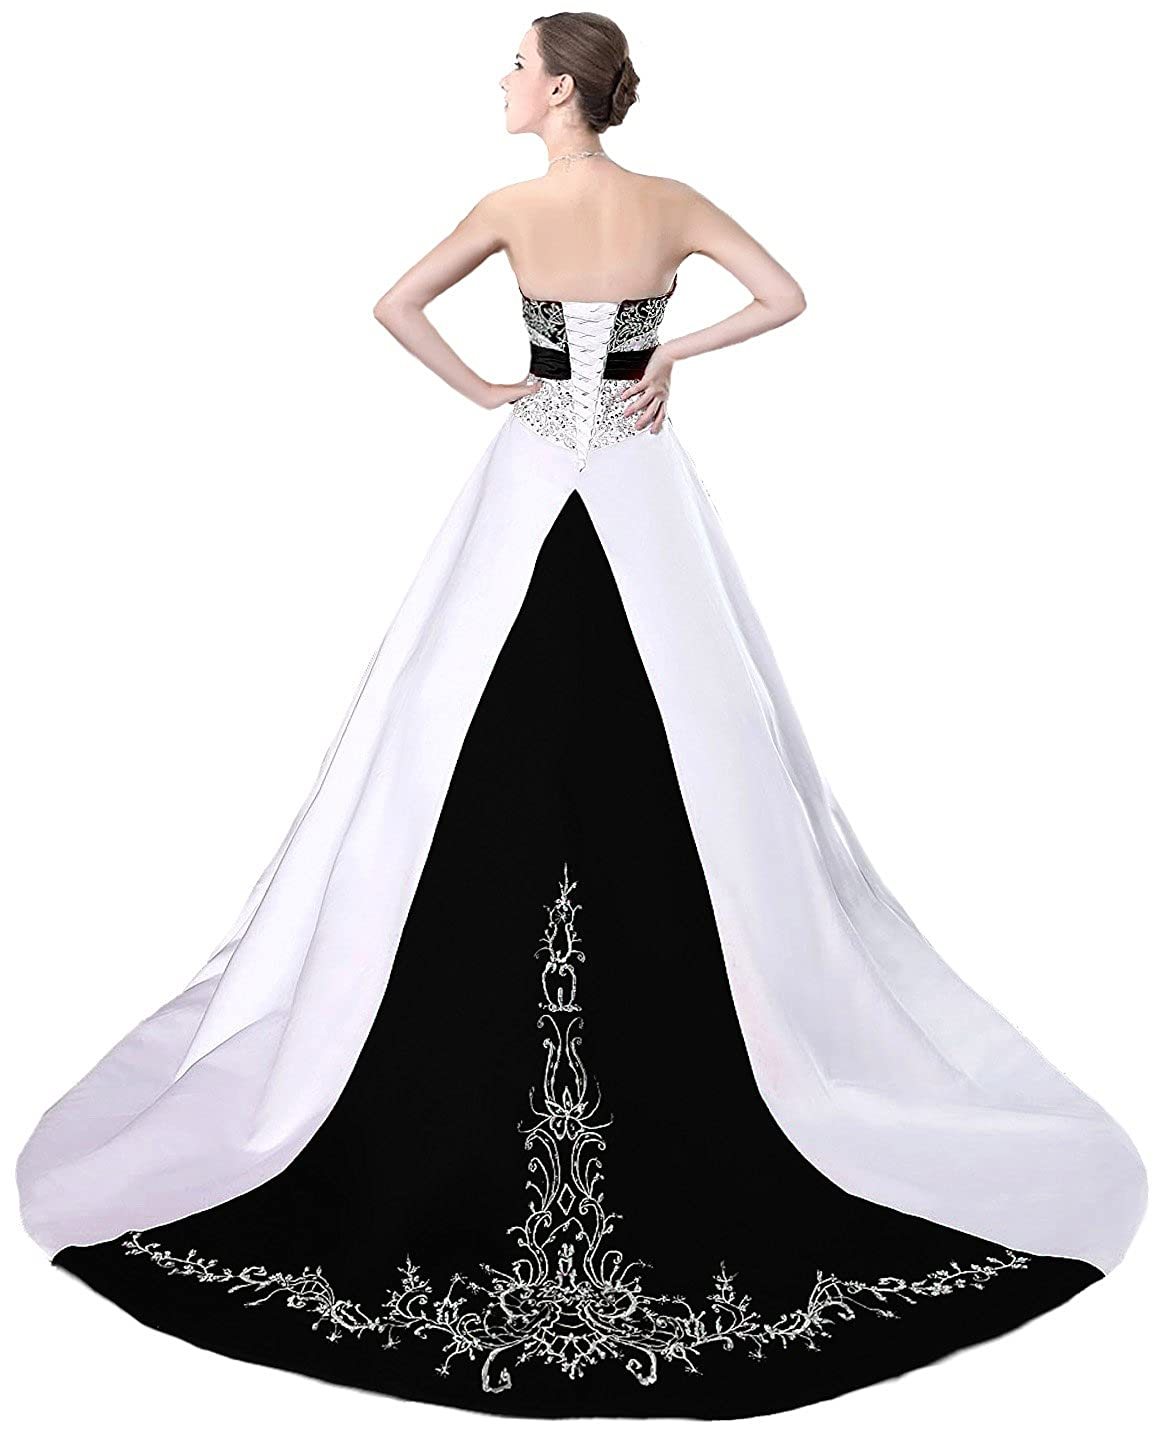 Faironly D229 Women\'s Wedding Dress Bridal Gown at Amazon Women\'s ...